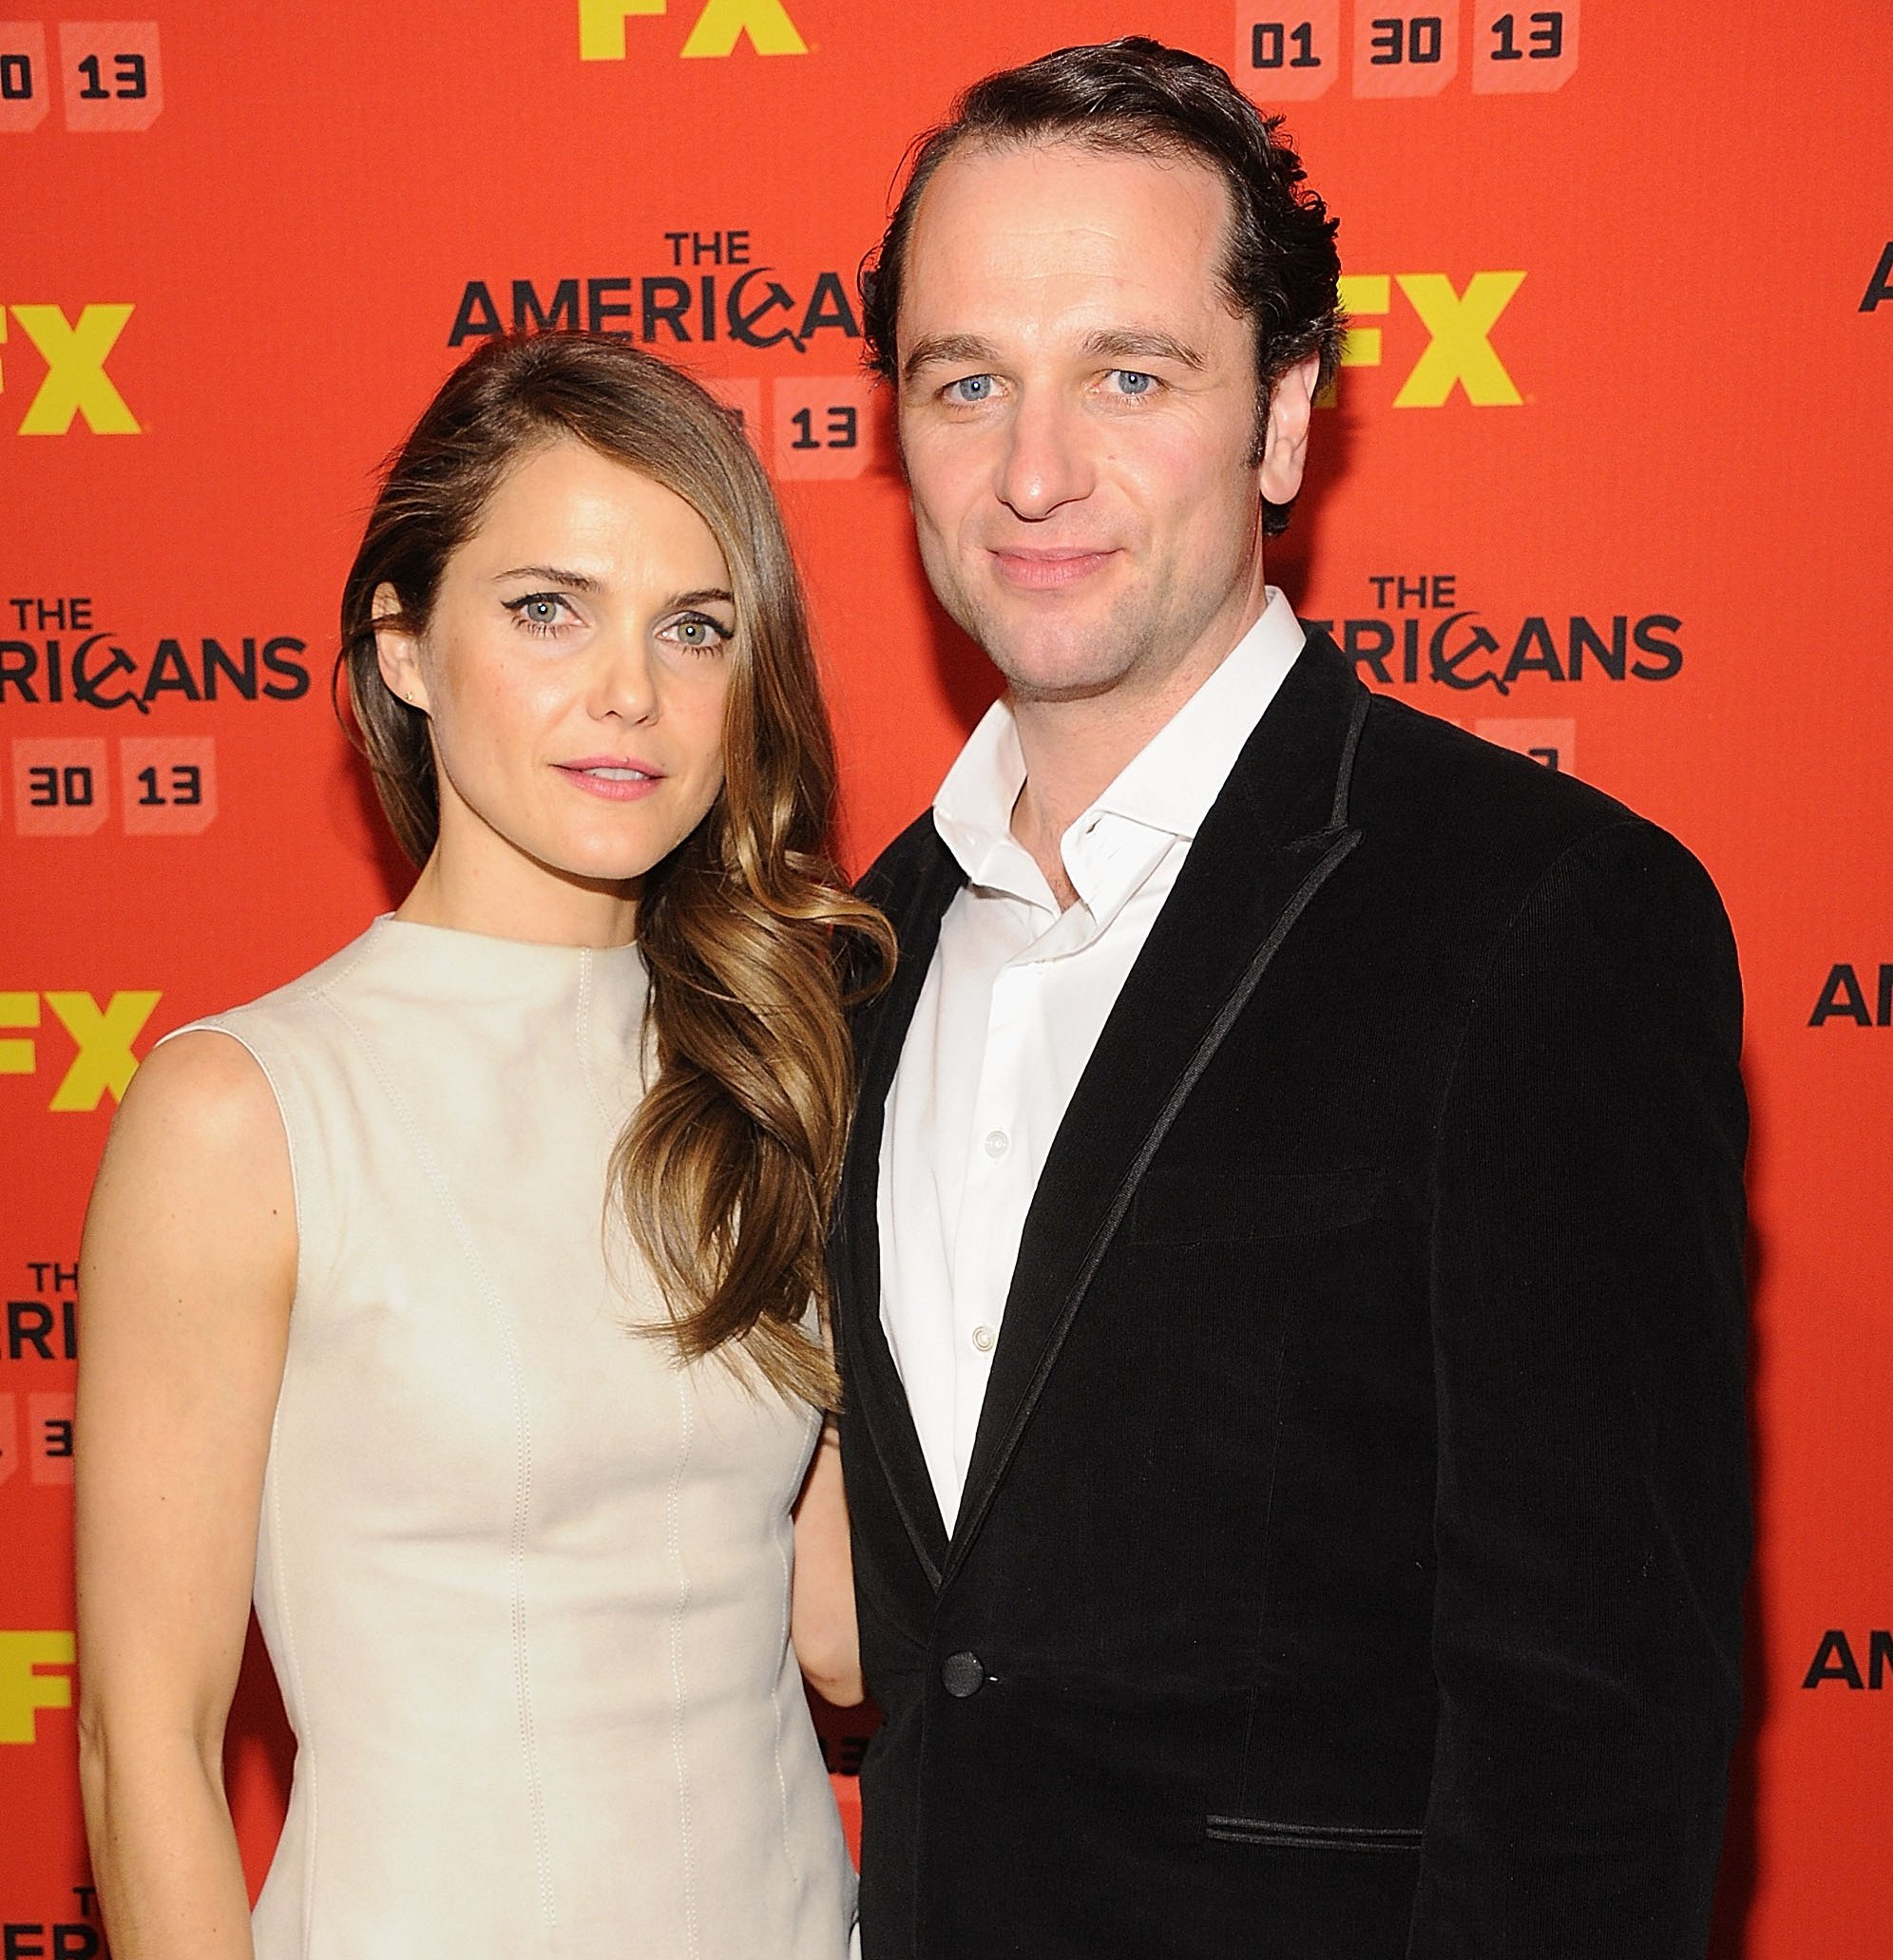 Keri Russell and Matthew Rhys